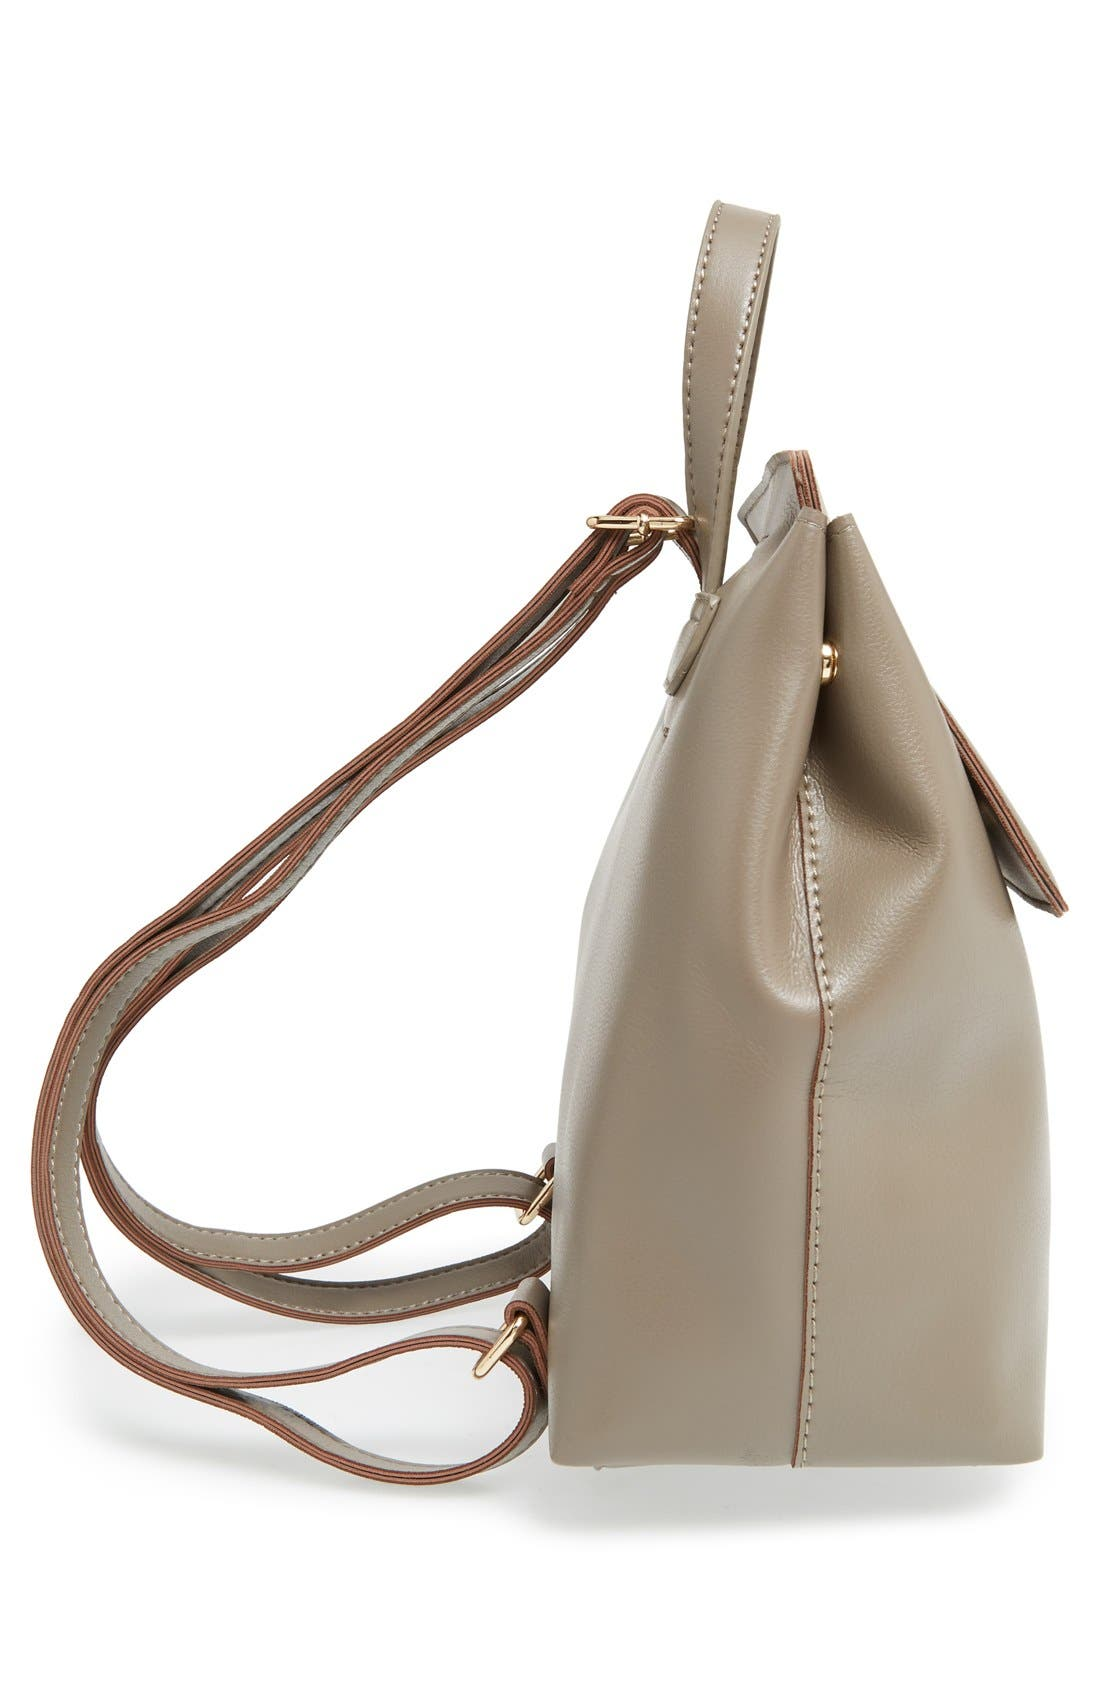 'Minimal Flap' Faux Leather Backpack,                             Alternate thumbnail 6, color,                             Taupe